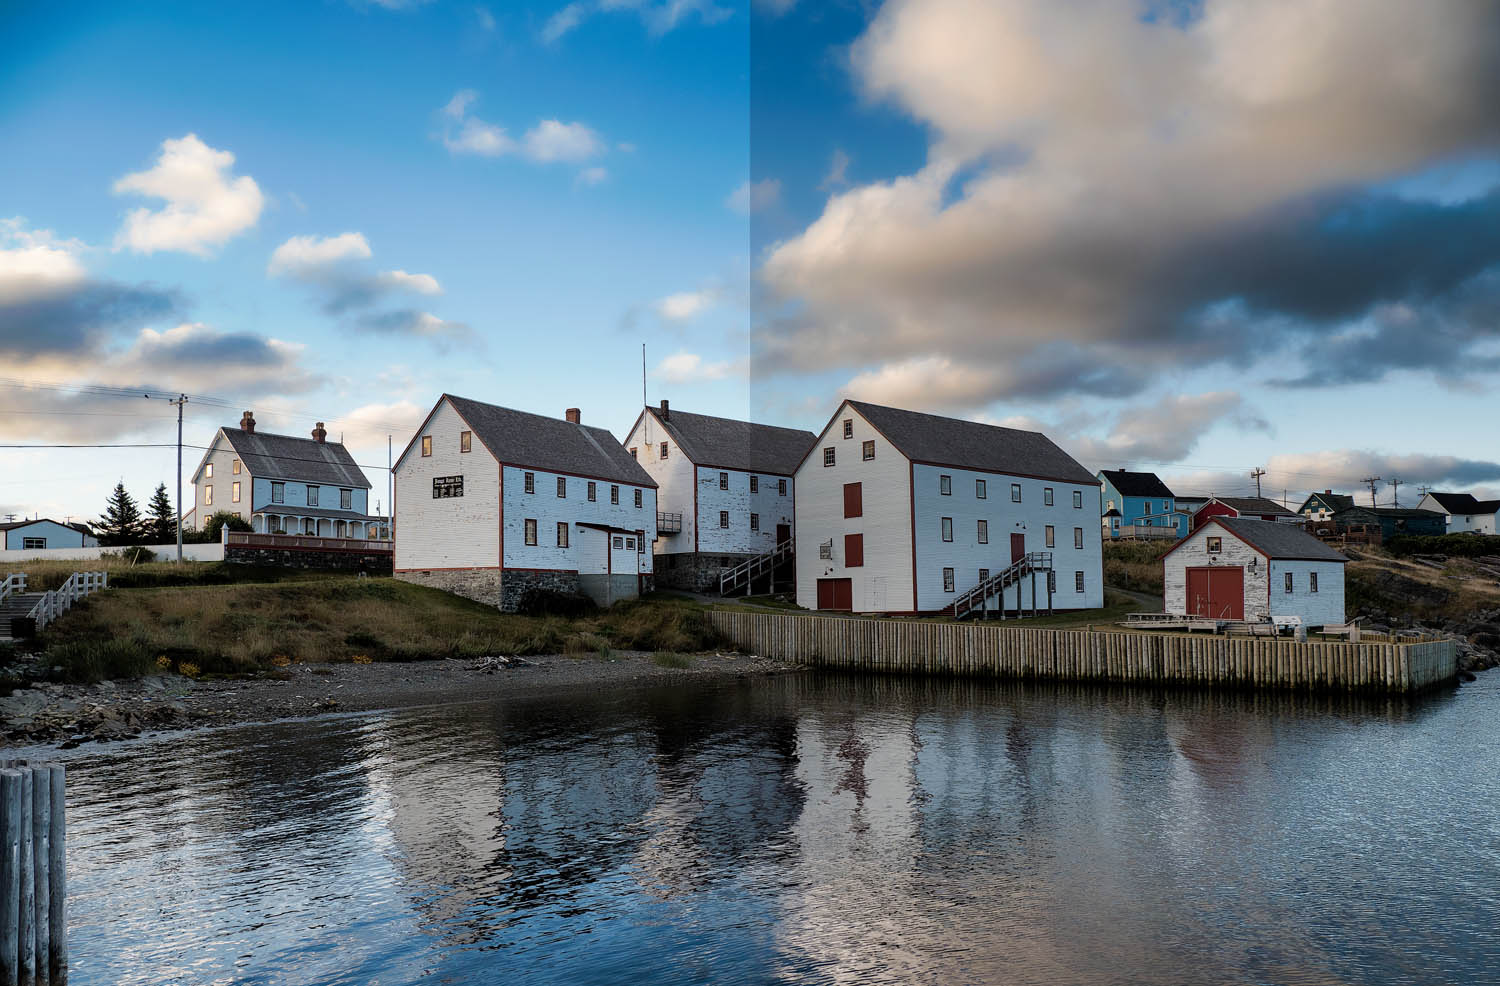 Image: The left shows the image normally processed with the right having a digital neutral density f...